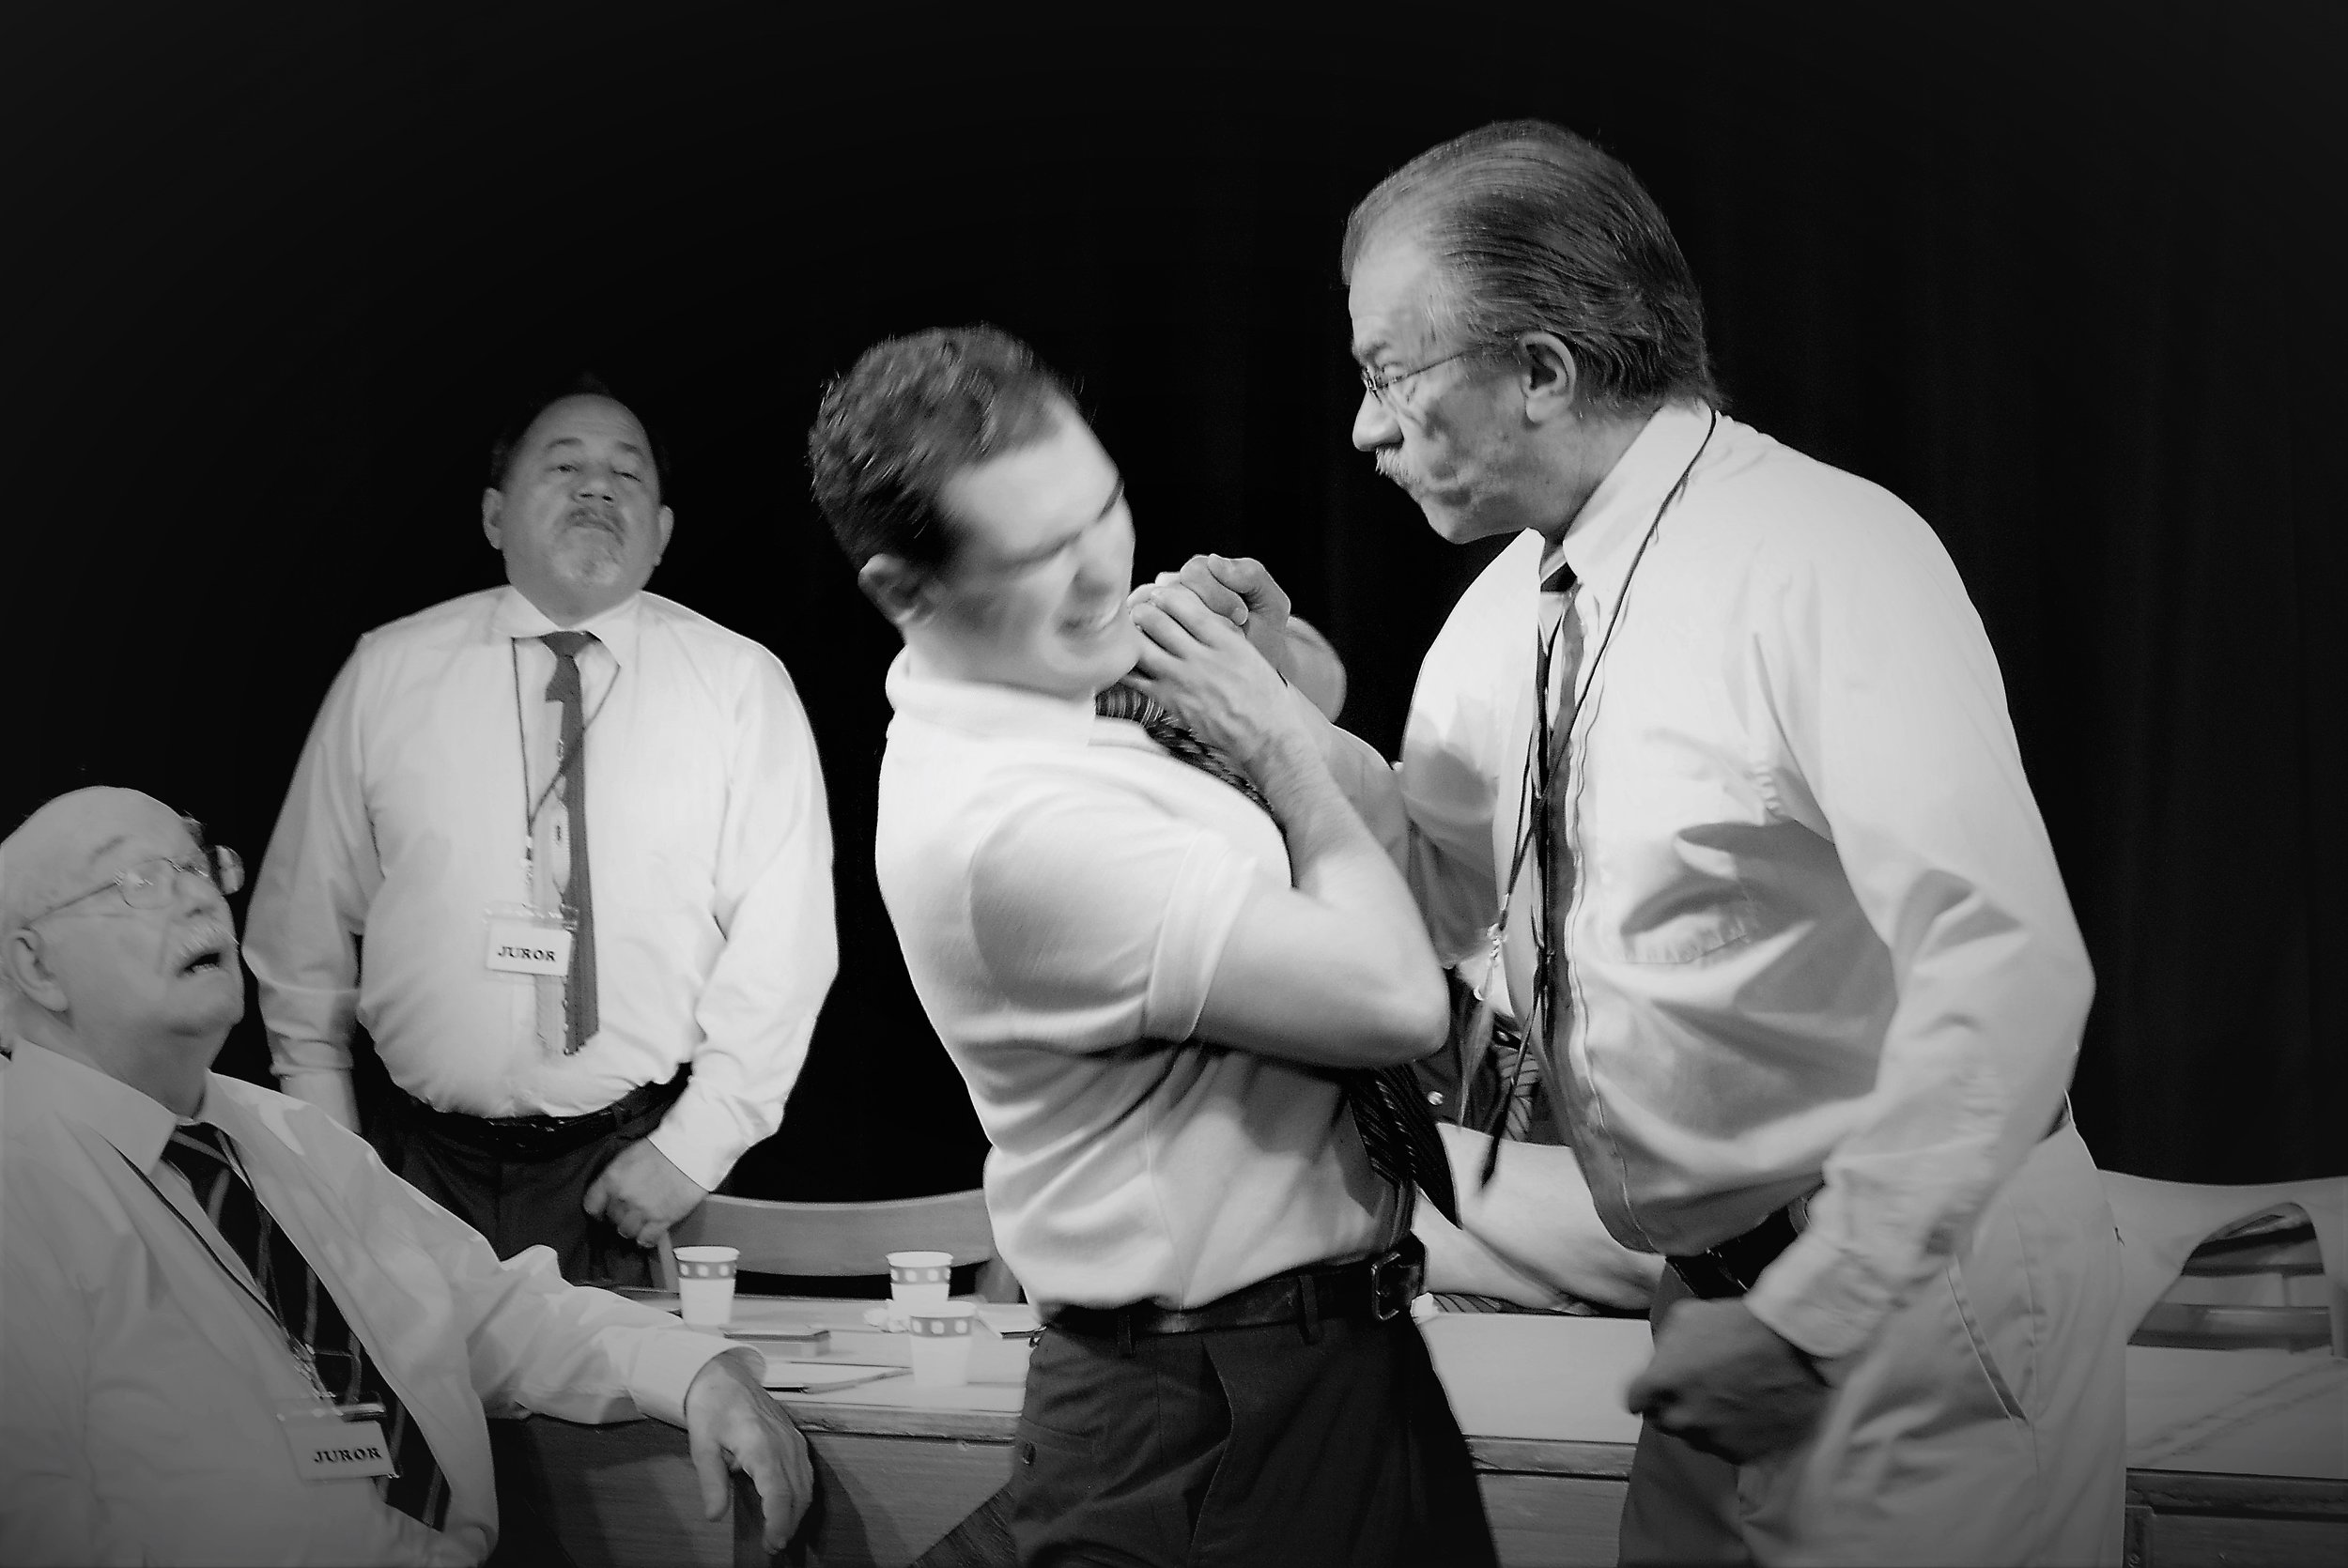 Jurors 9 and 11 (Doug Smedbron and Erico Ortiz), from left, watch as Jurors 5 and 4 (Zach Sharrock and Pau Weir) re-enact a murder in a scene from Cream City Theater's '12 Angry Men.'